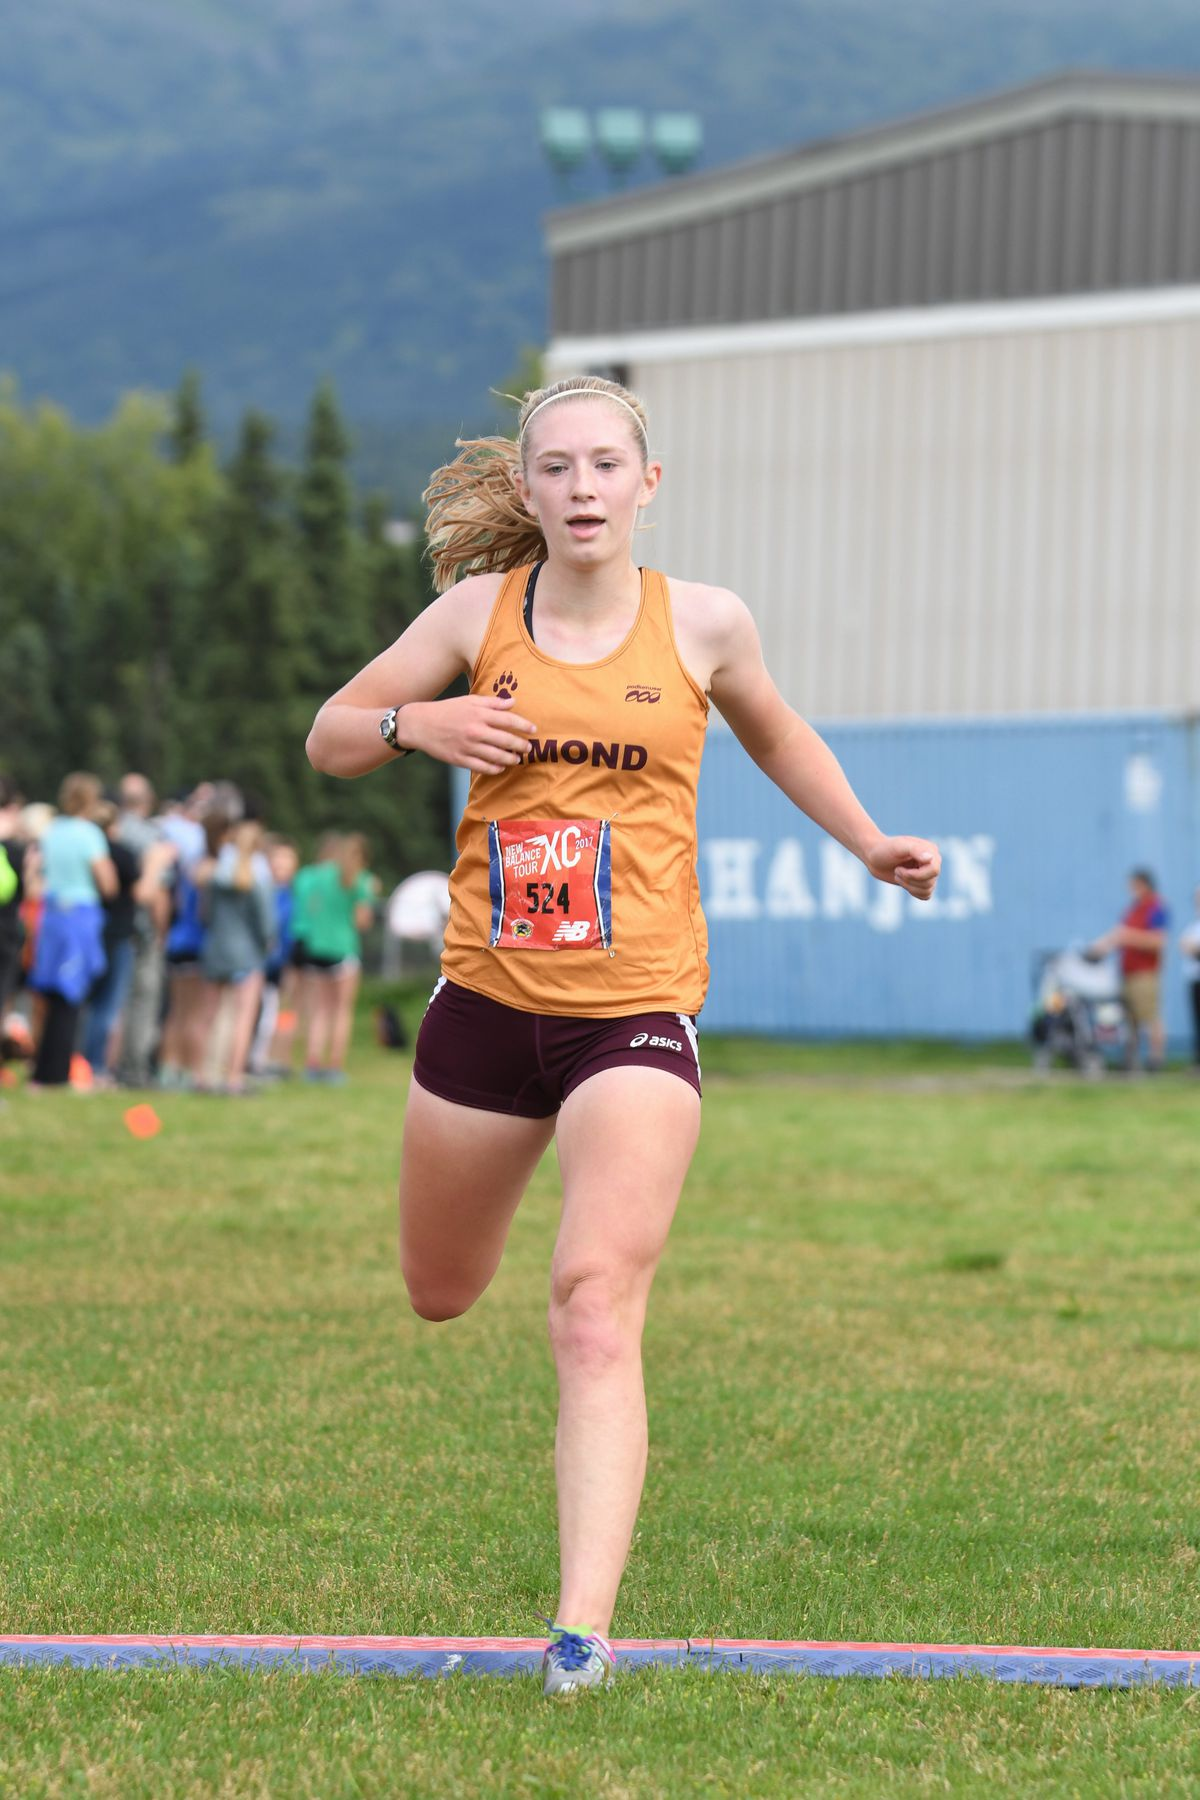 Dimond's Kylie Judd crosses the finish line to claim victory in a three-team meet at Service High on Friday8. (Photo by Urban Enkvist)